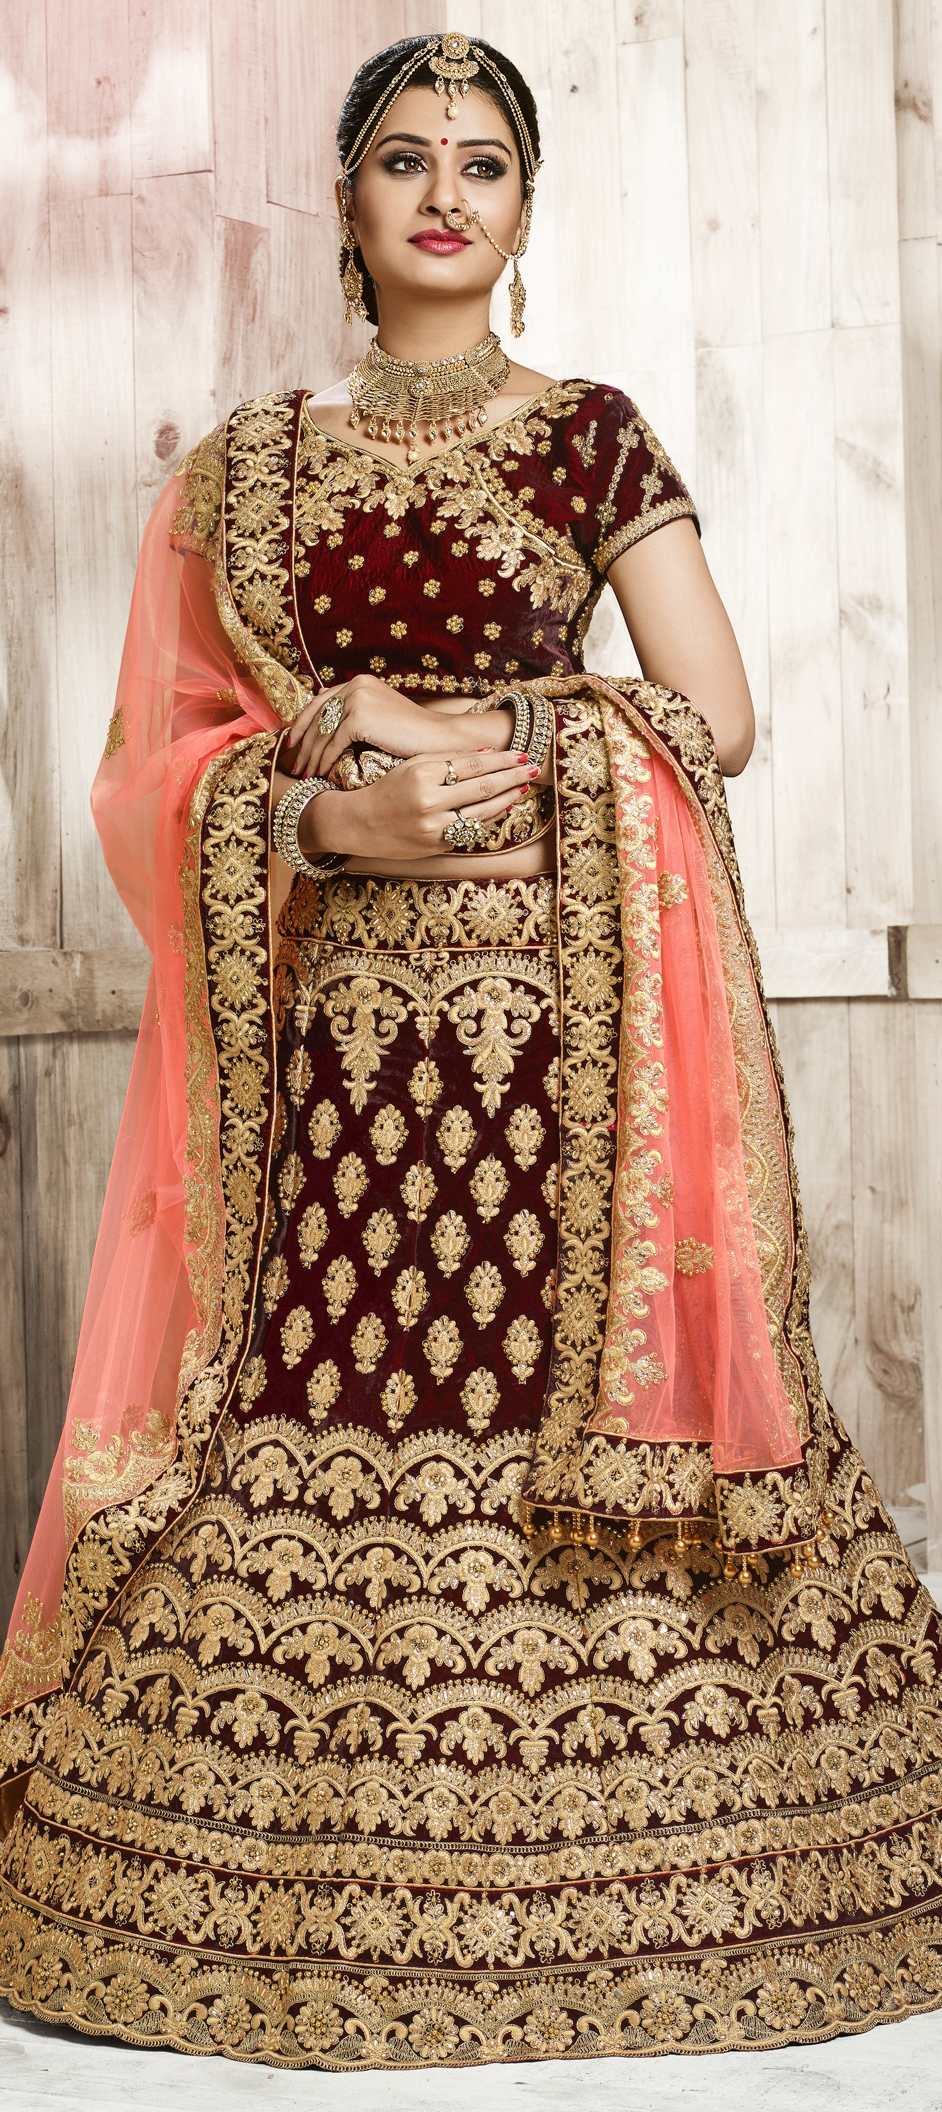 755929 Red And Maroon Color Family Bridal Lehenga